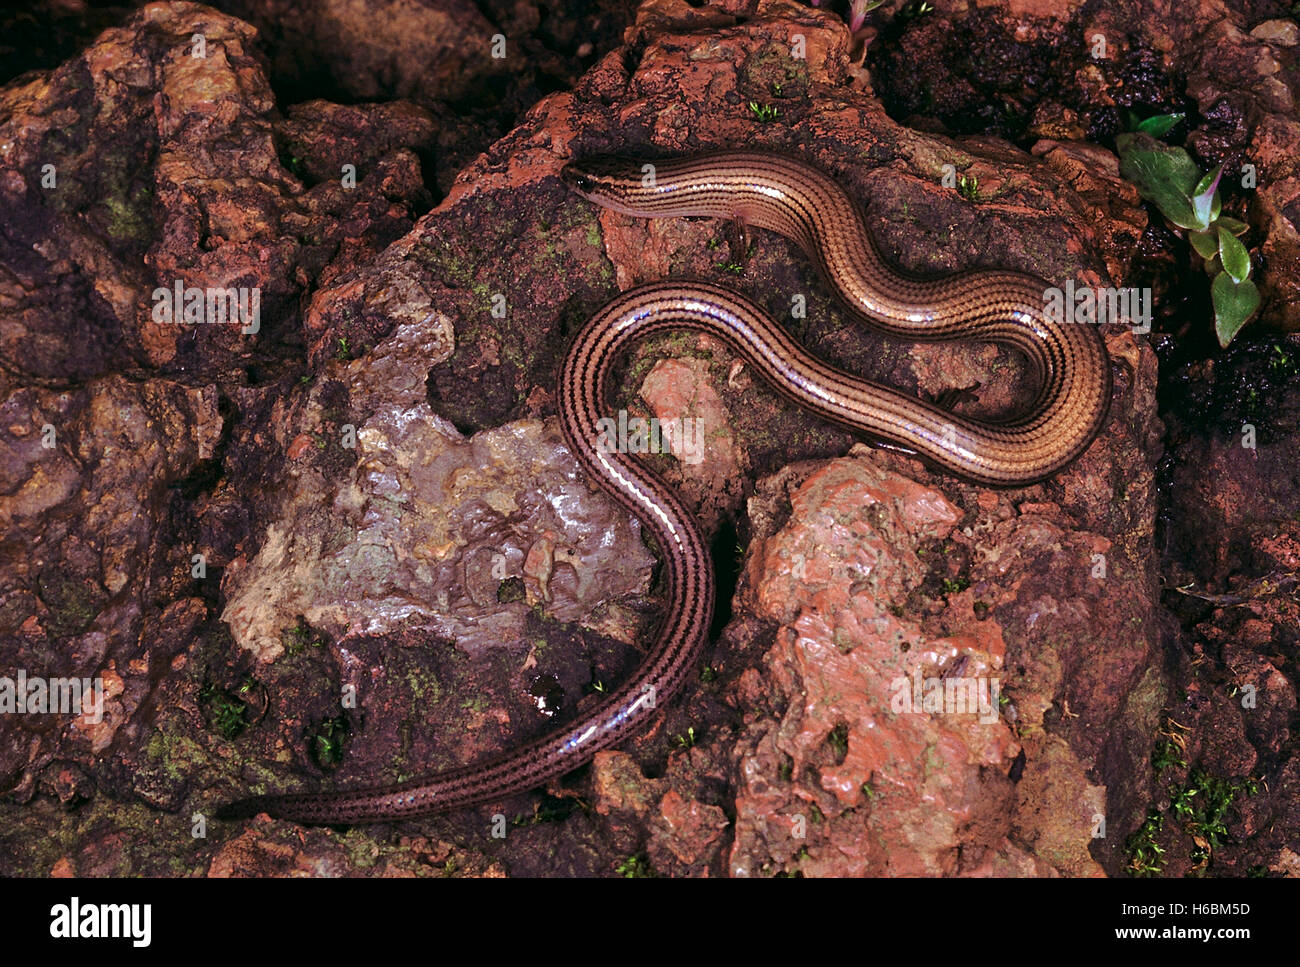 Riopa sp. Snake skink. An extremely elongated skink with reduced limbs. They are mainly found in the upper layers - Stock Image